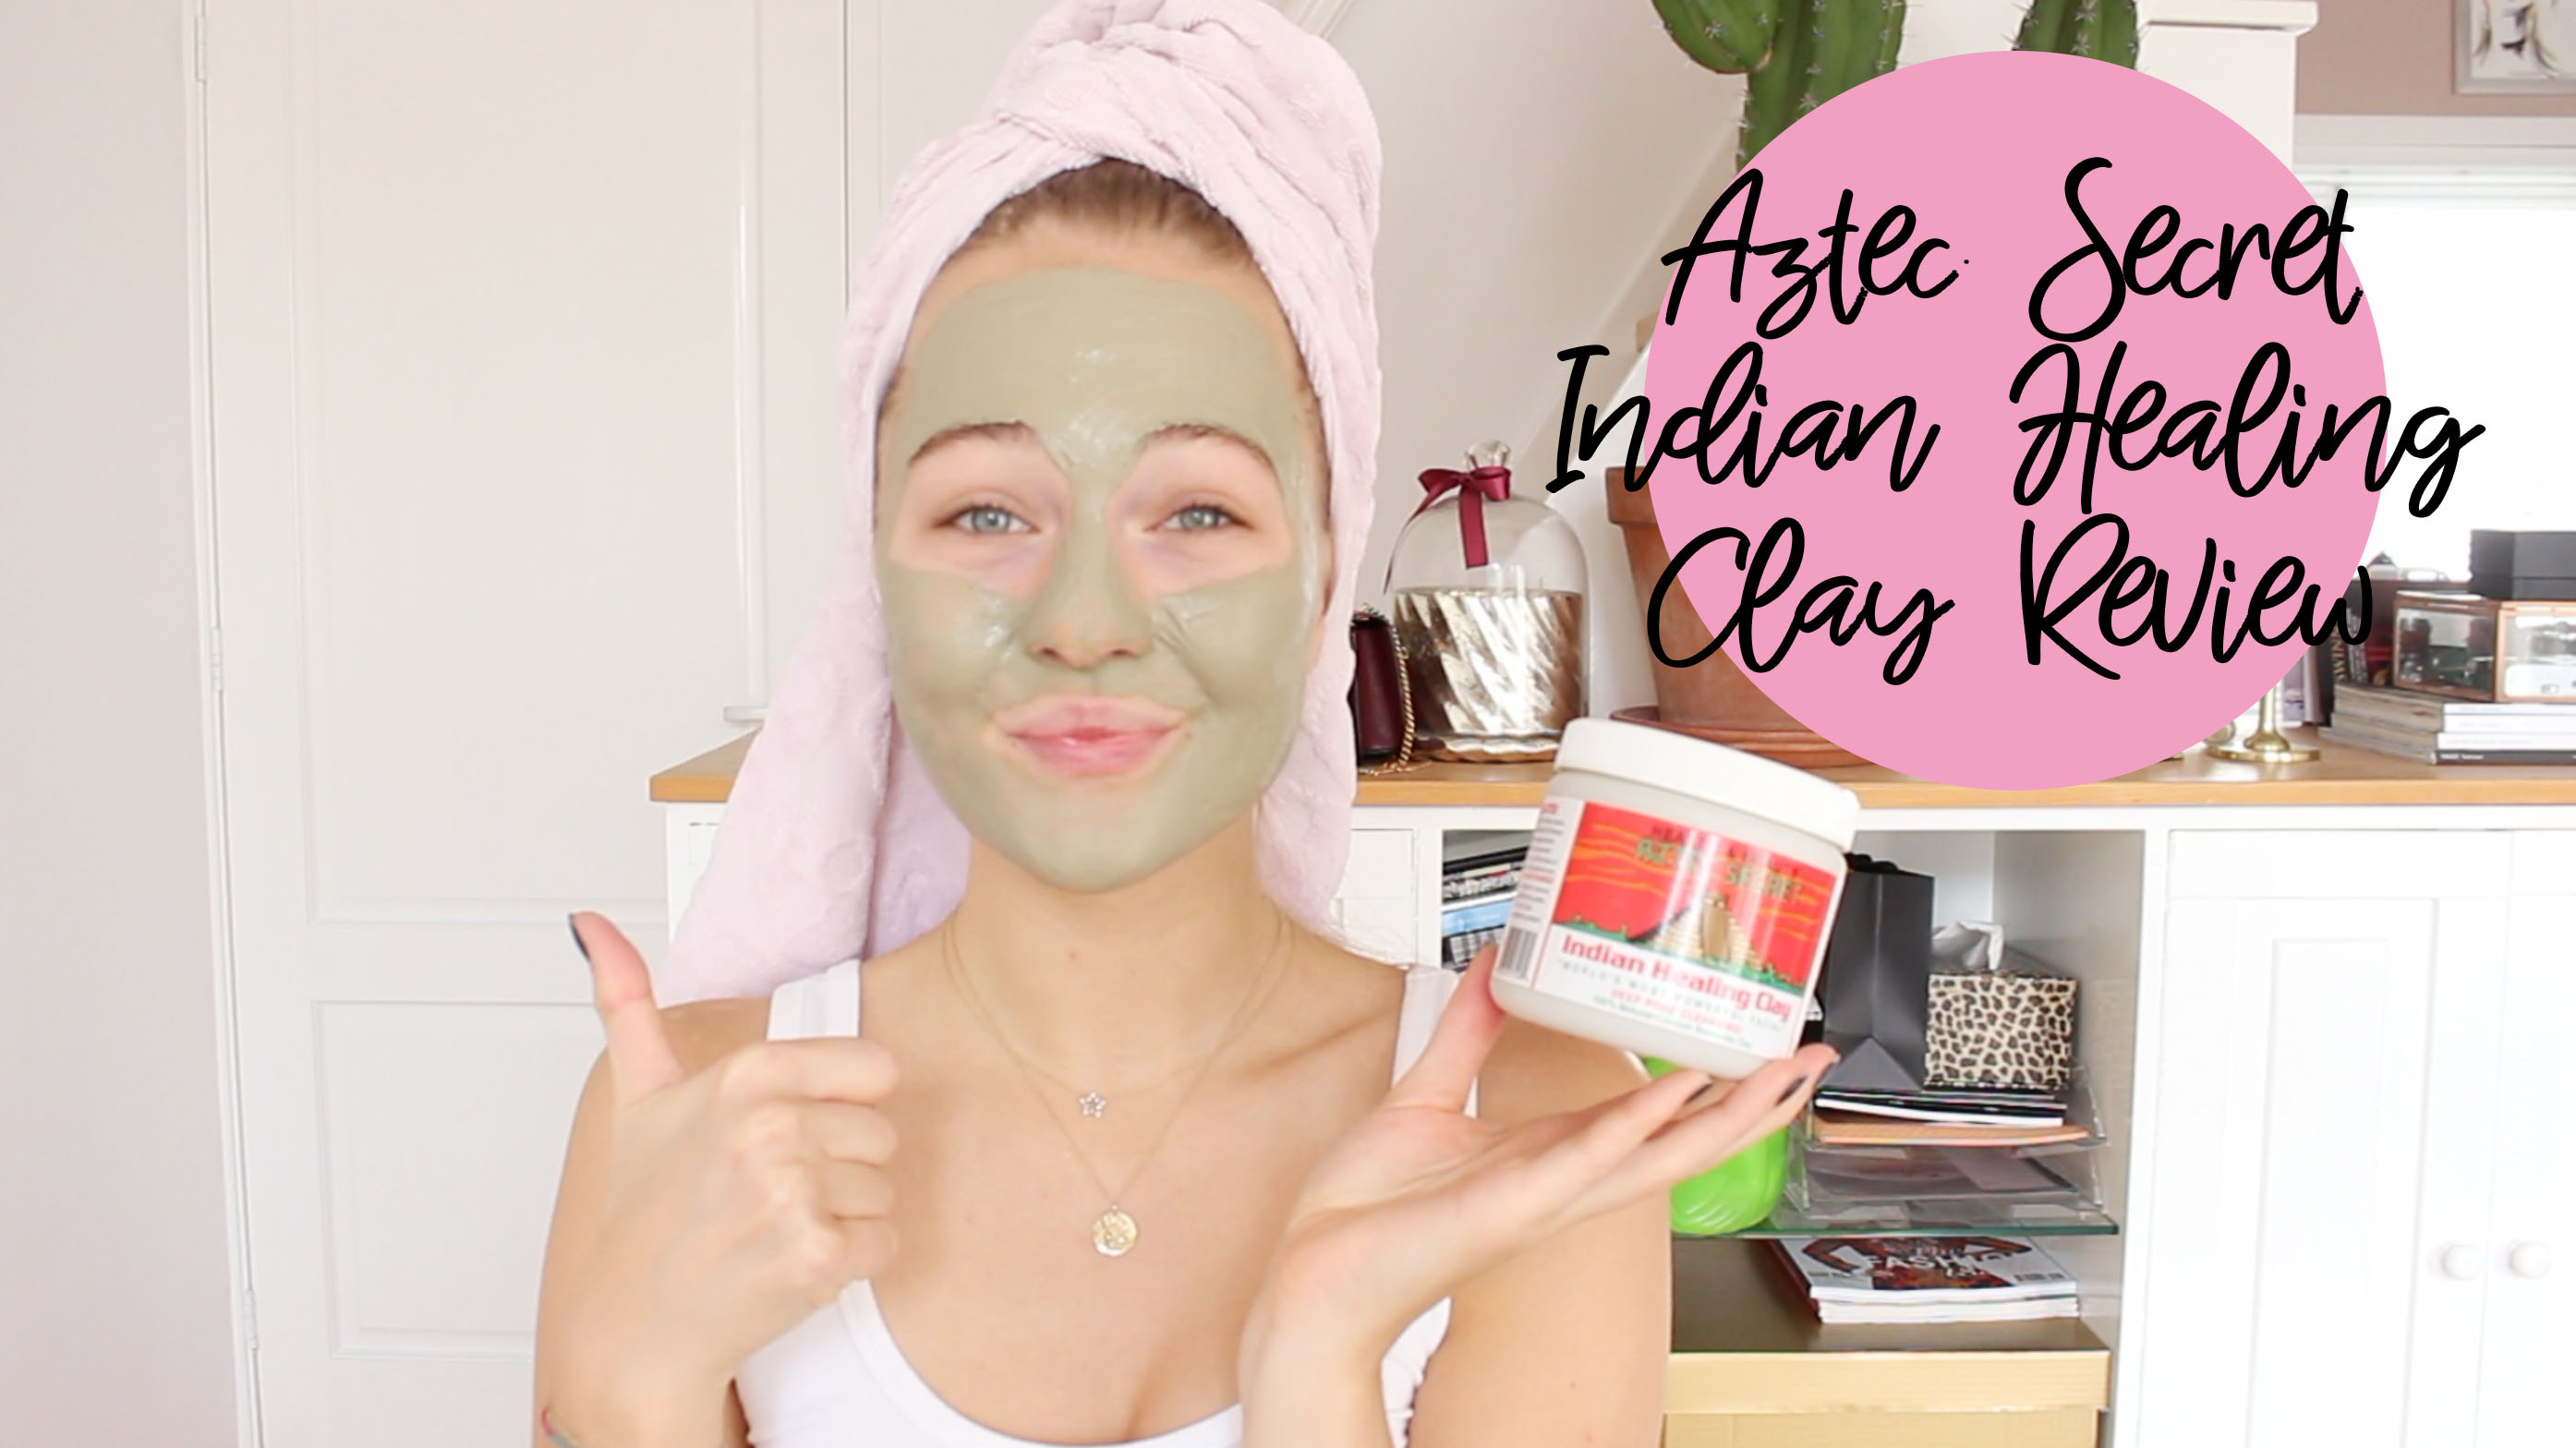 AZTEC SECRET INDIAN HEALING CLAY MASK REVIEW